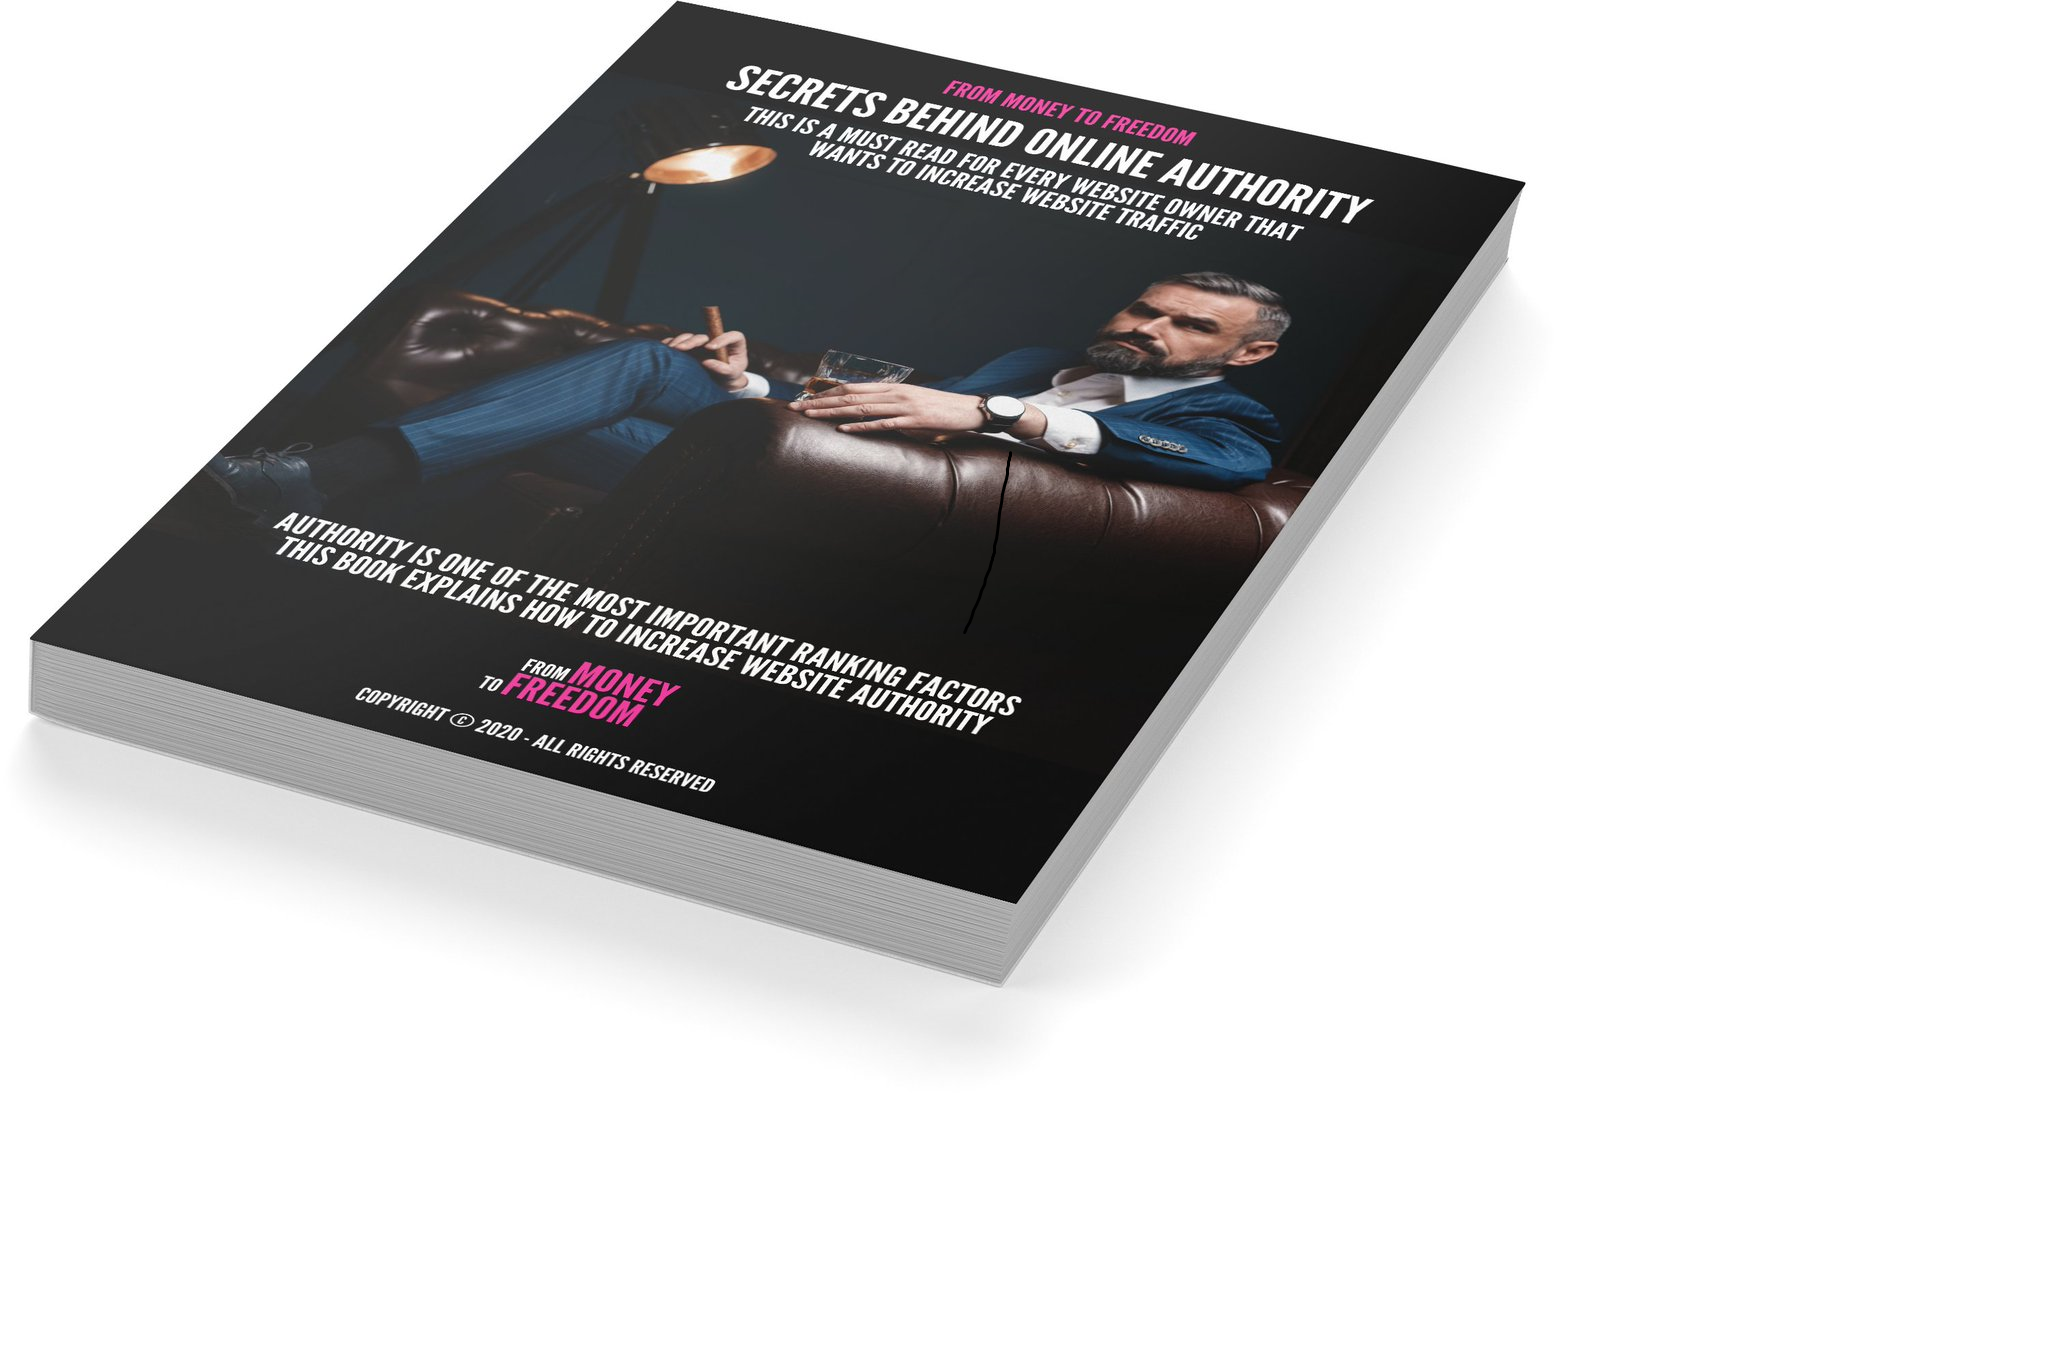 secrets to online authority